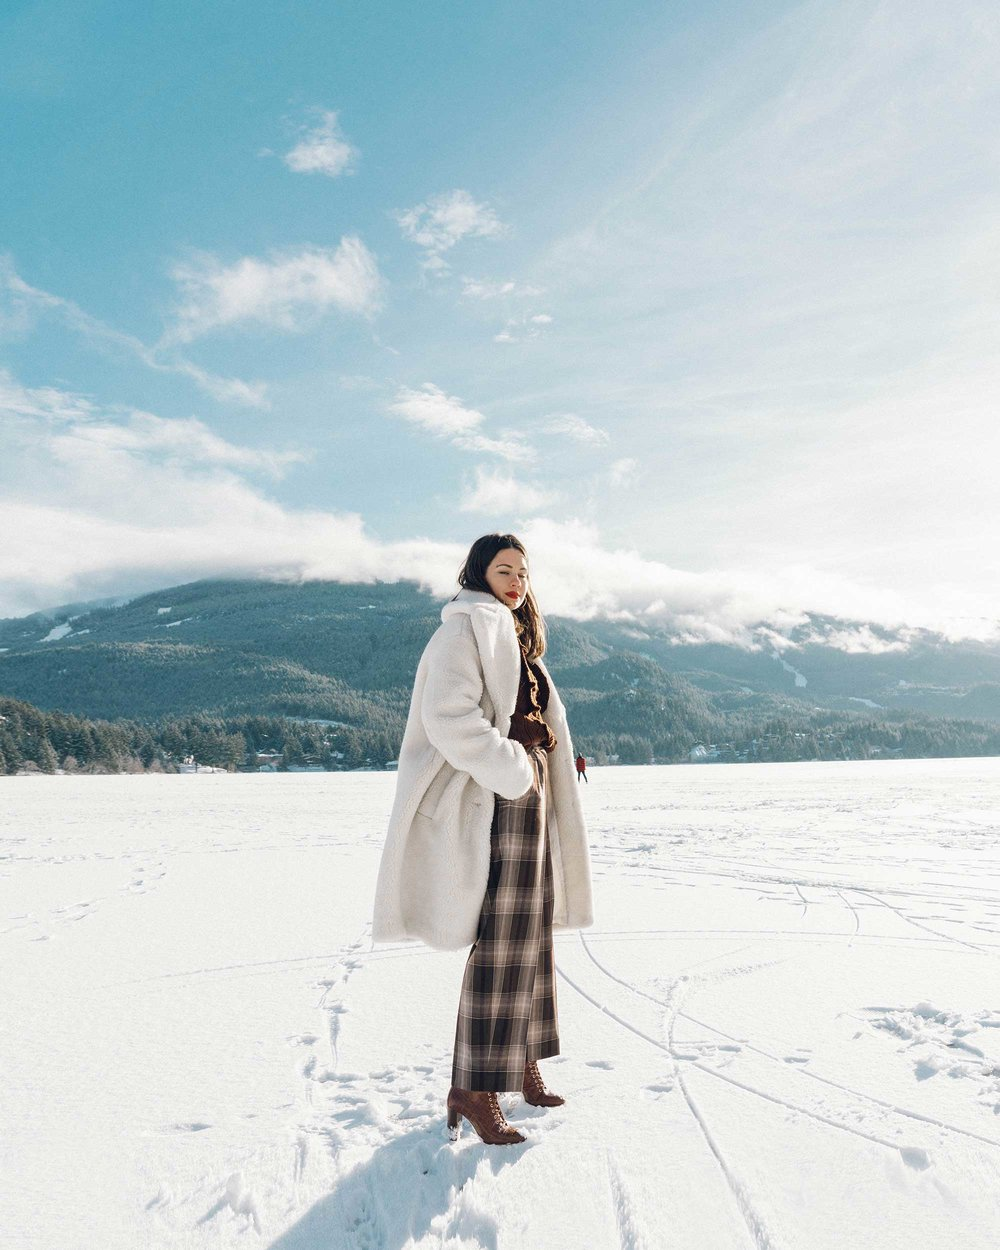 & Other Stories Tailored Brown Plaid Pants with pleats, white Faux Shearling Coat,  winter snow outfit, whistler canada4.jpg